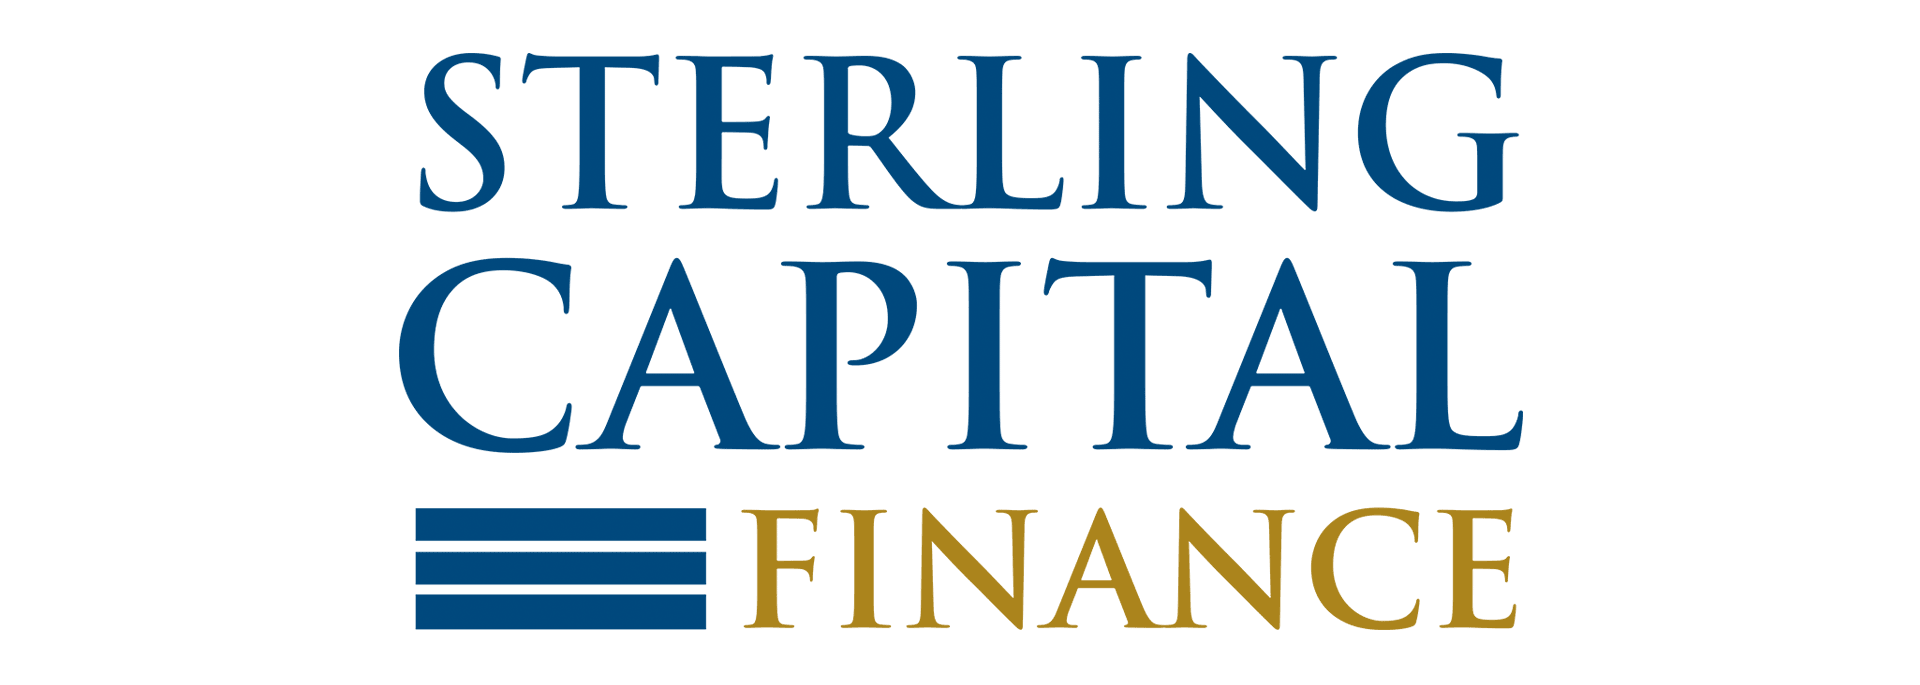 Sterling Capital Finance brand and website design